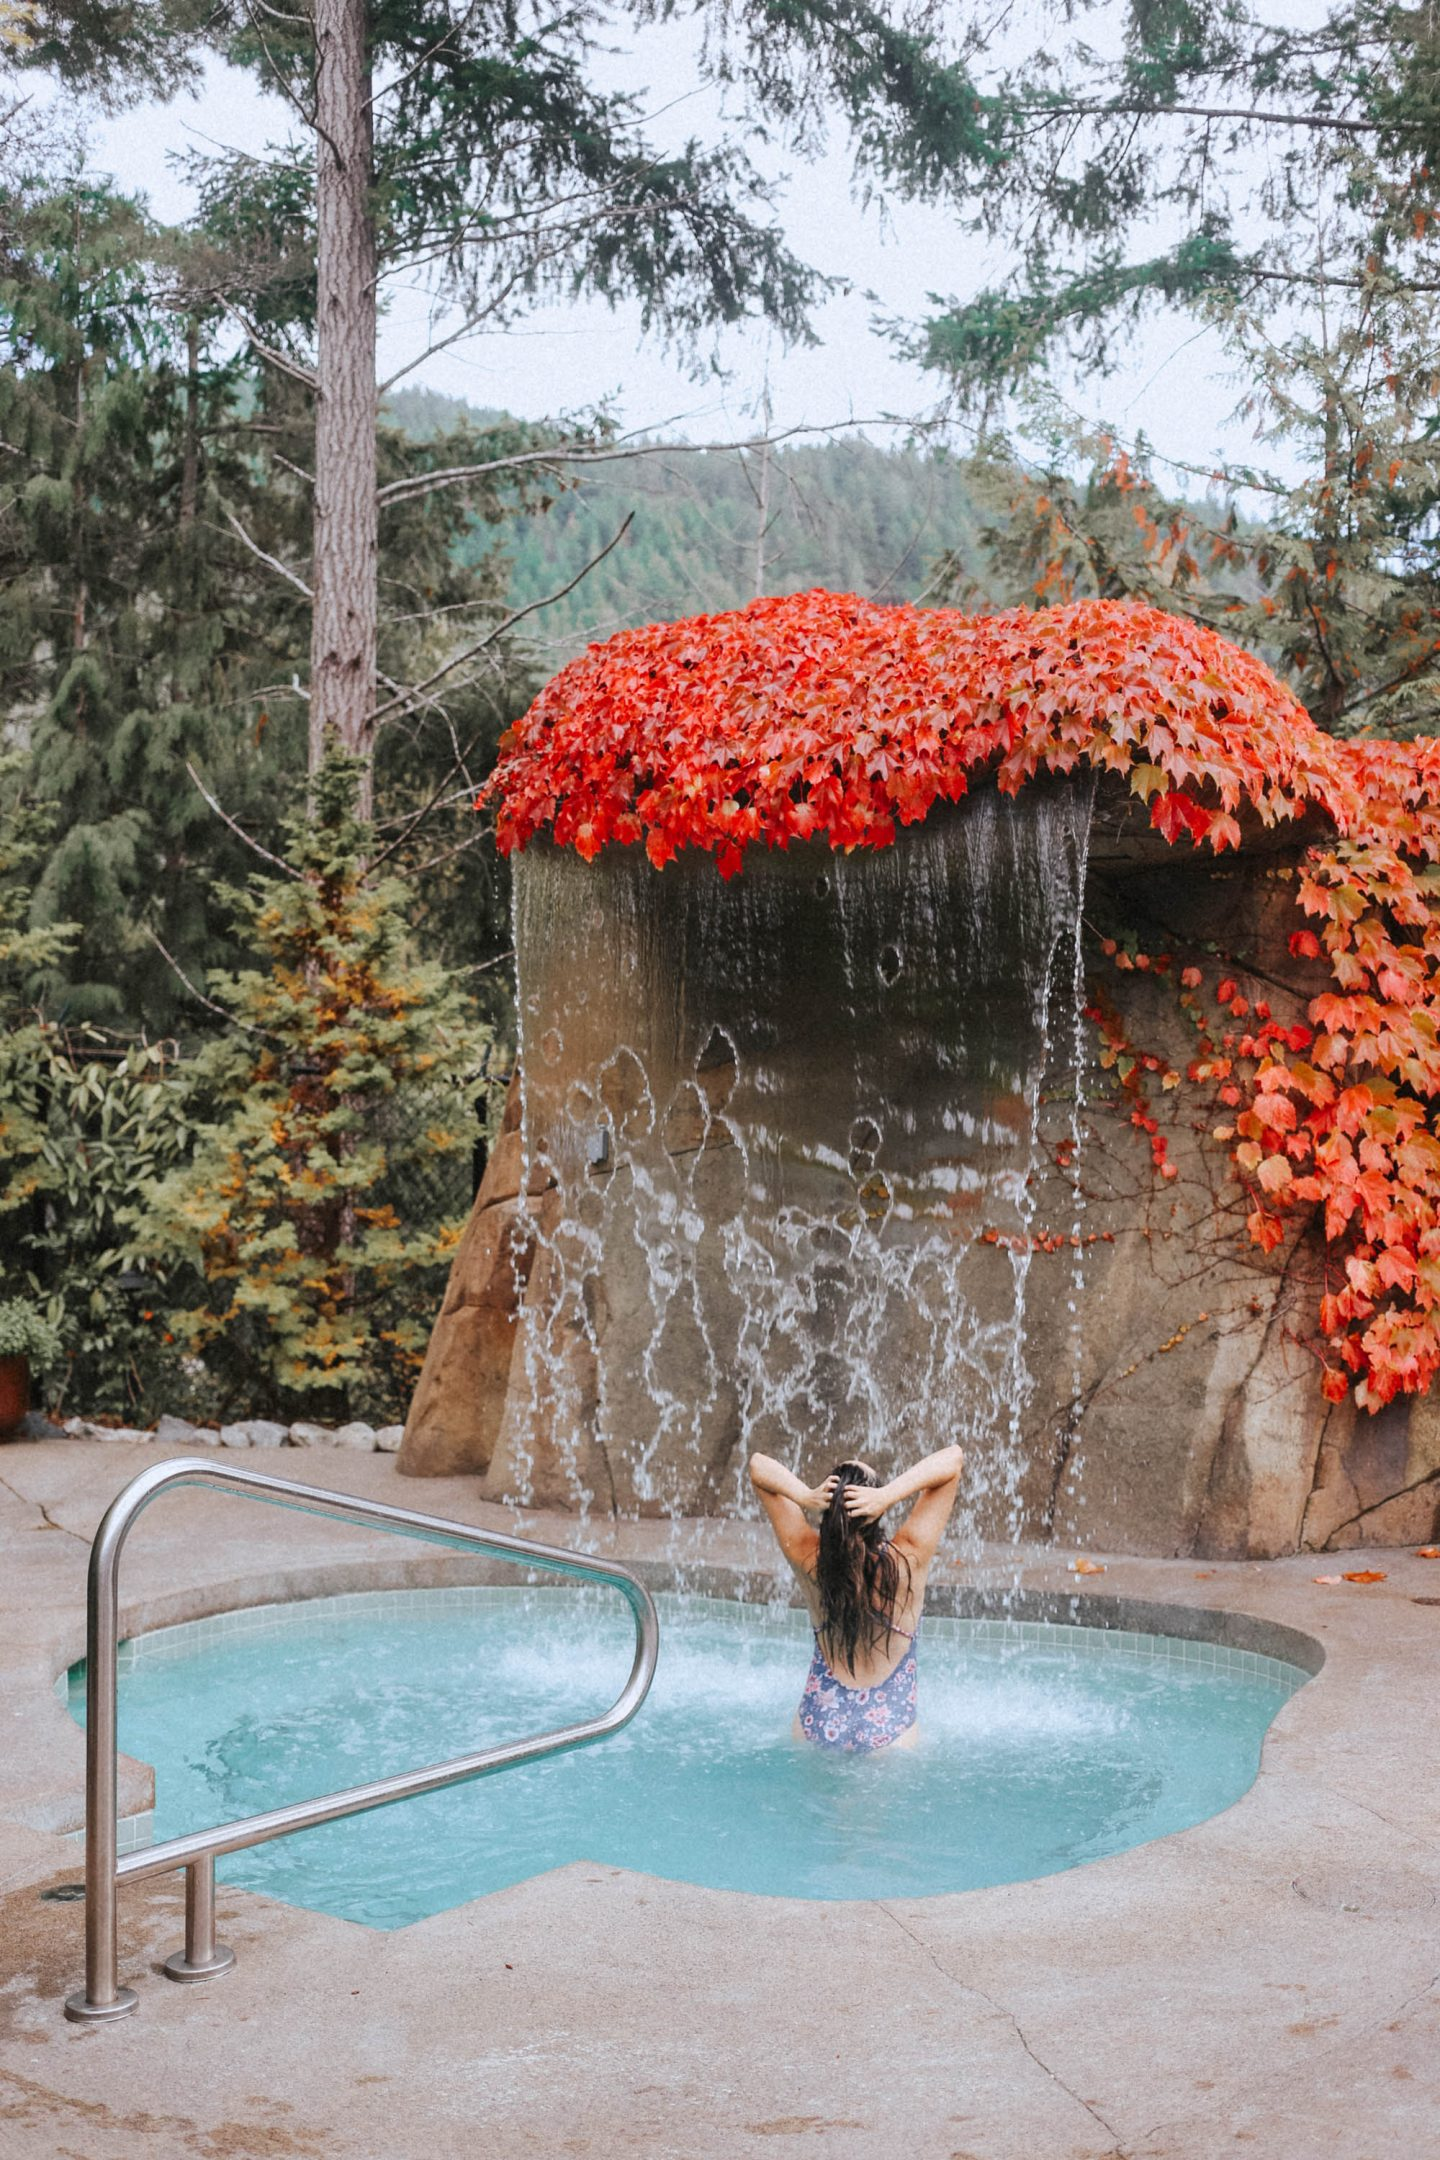 Enjoying the hot tub with rainfall feature at The Spa at the Painted Boat Resort Sunshine Coast BC